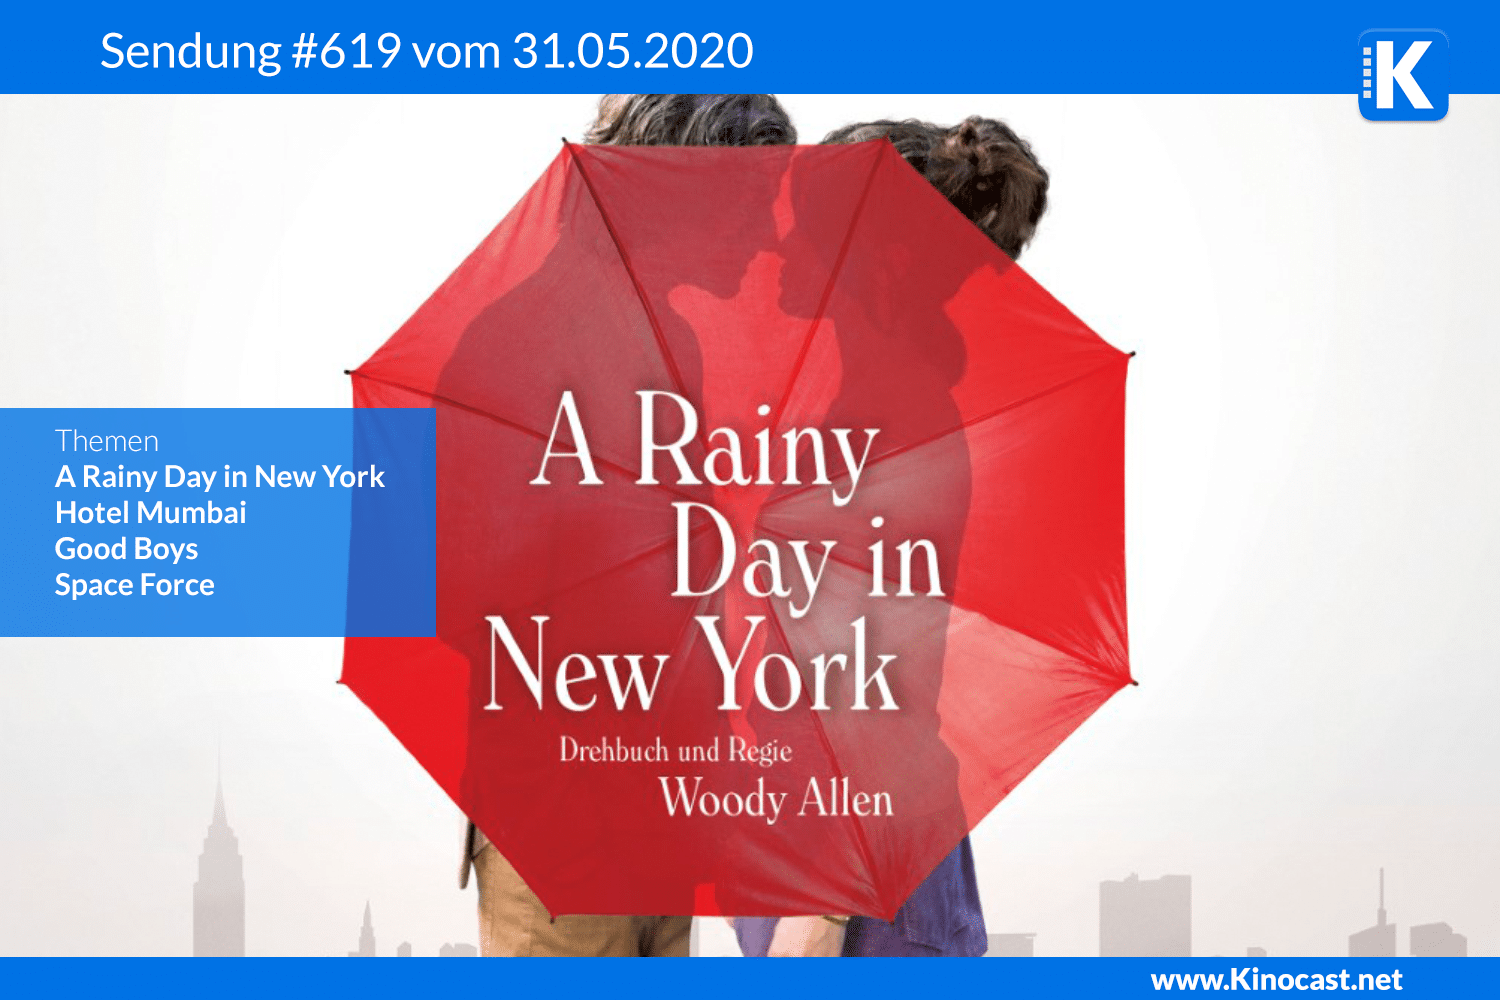 A Rainy Day in New York Woody Allen Hotel Mumbai Good Boys Space Force Download film german deutsch Podcast